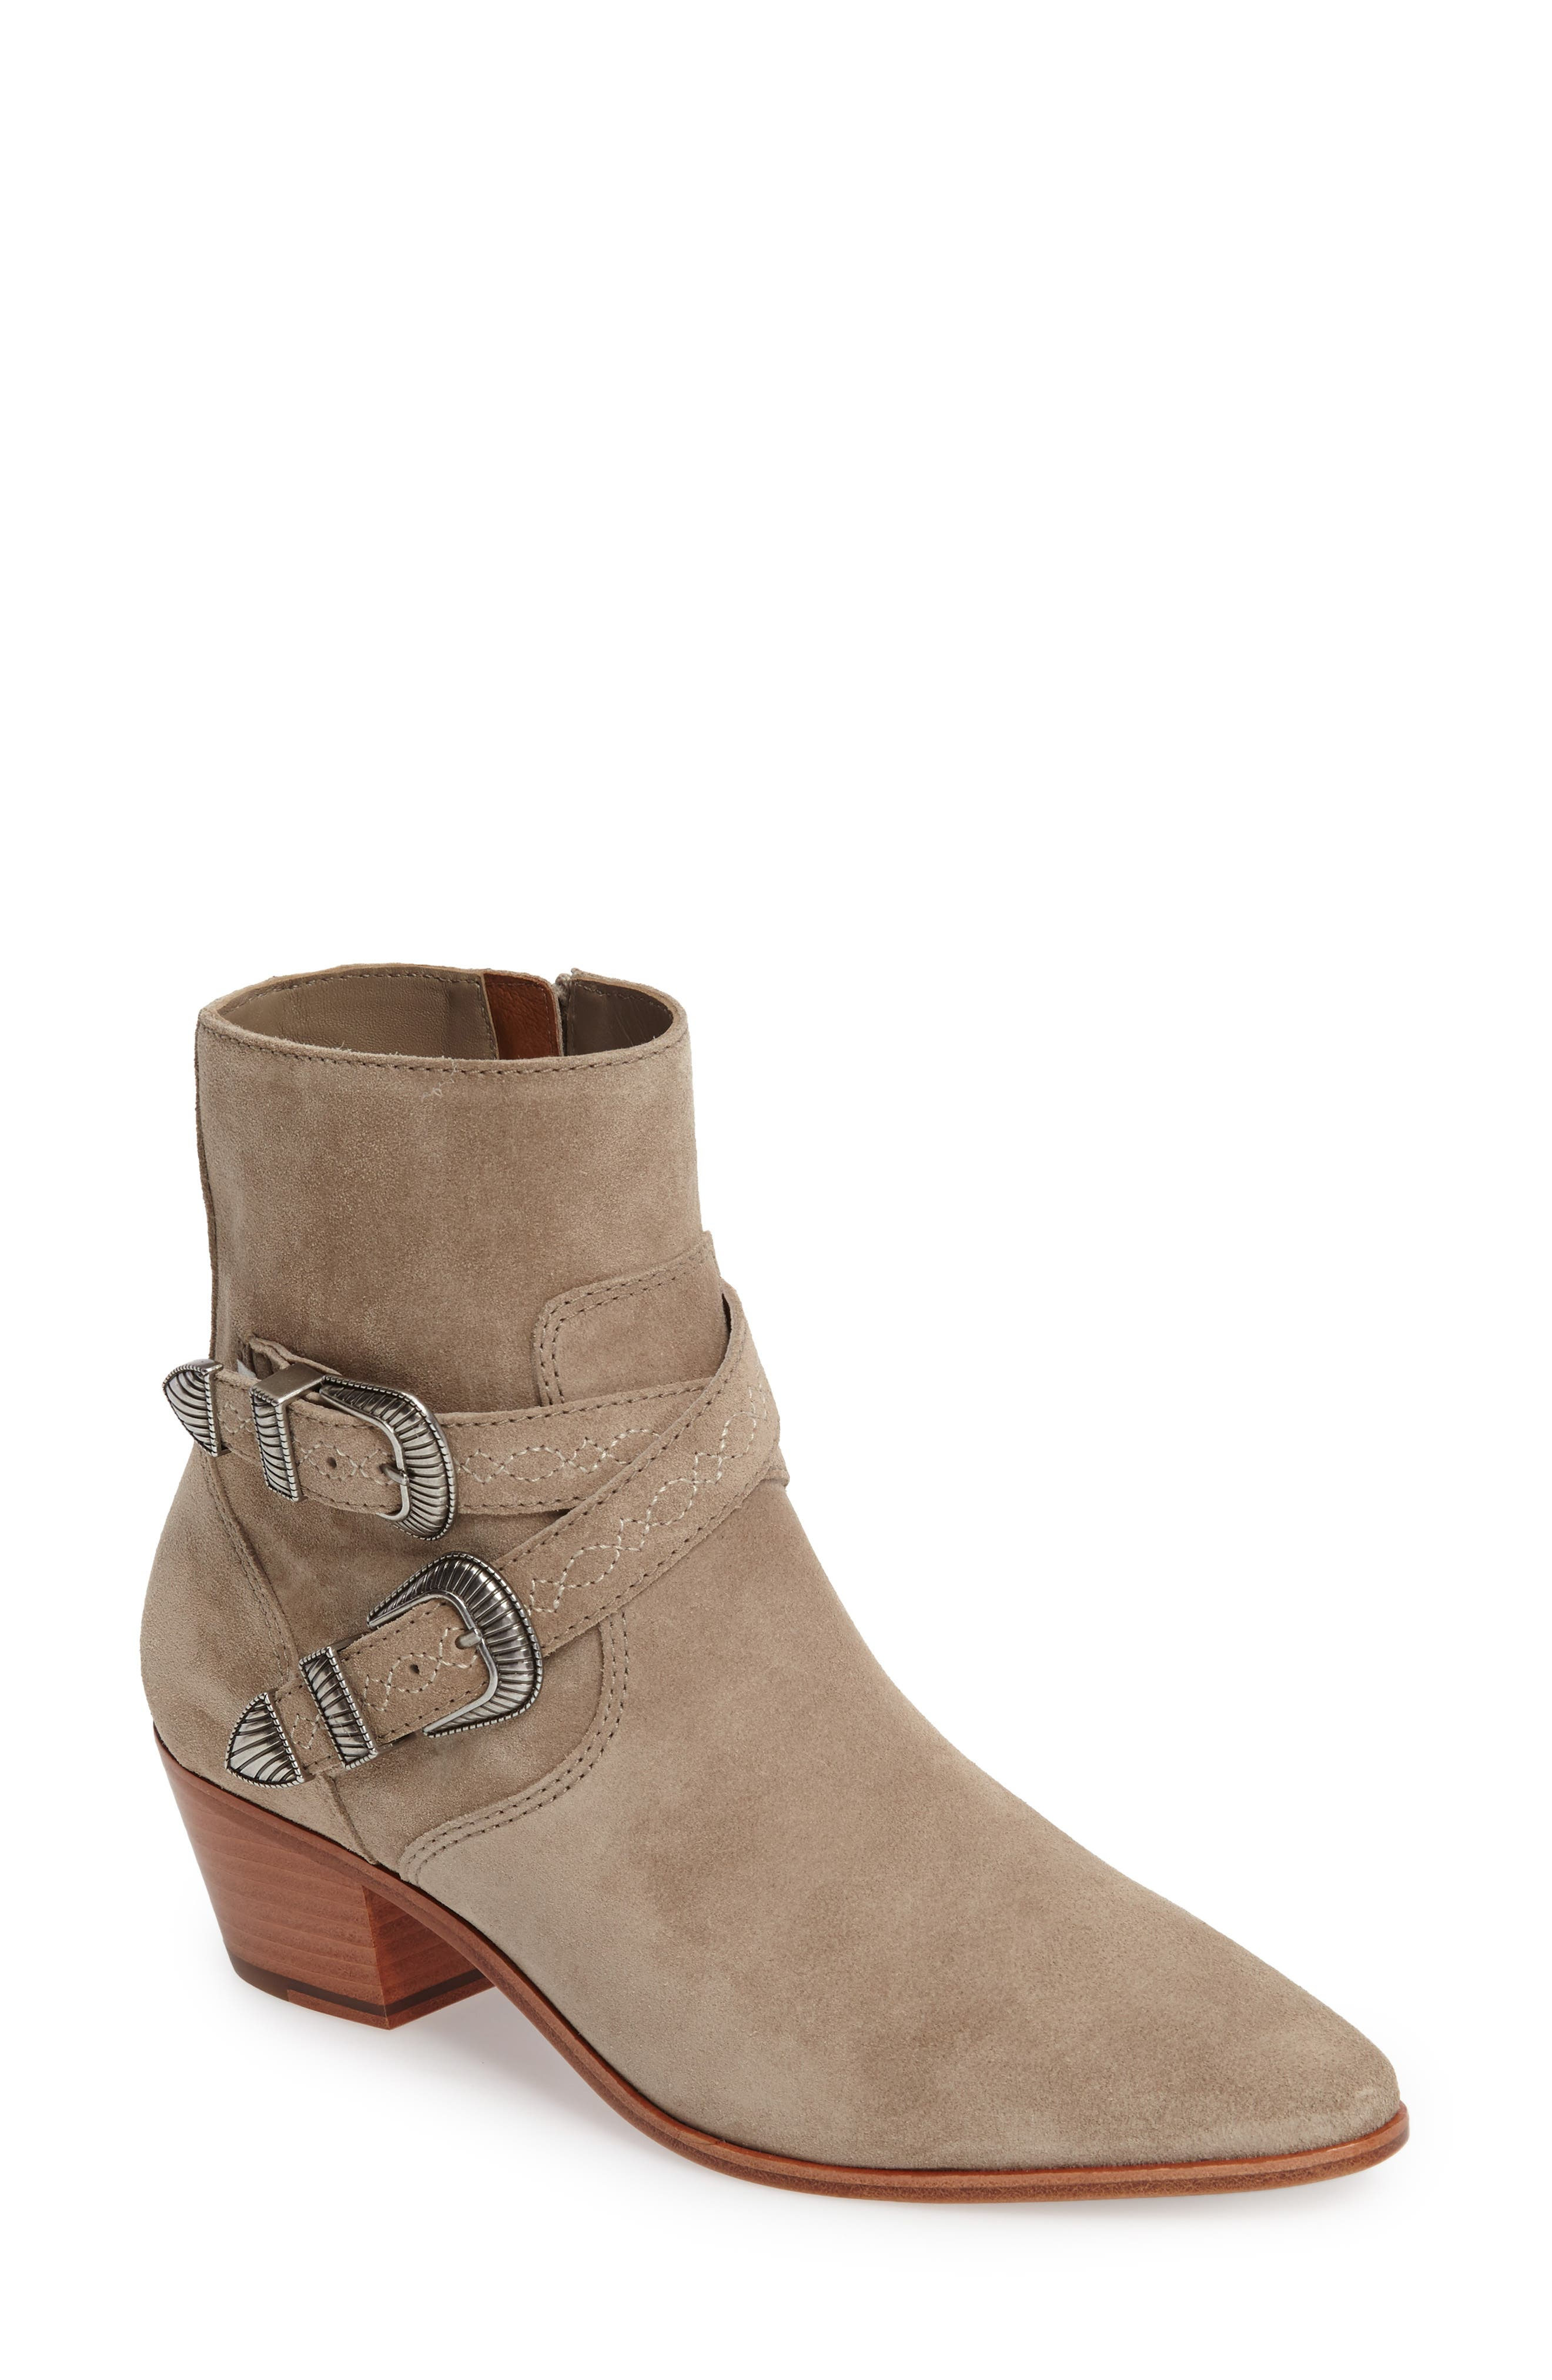 Ellen Buckle Strap Bootie,                             Main thumbnail 1, color,                             ASH